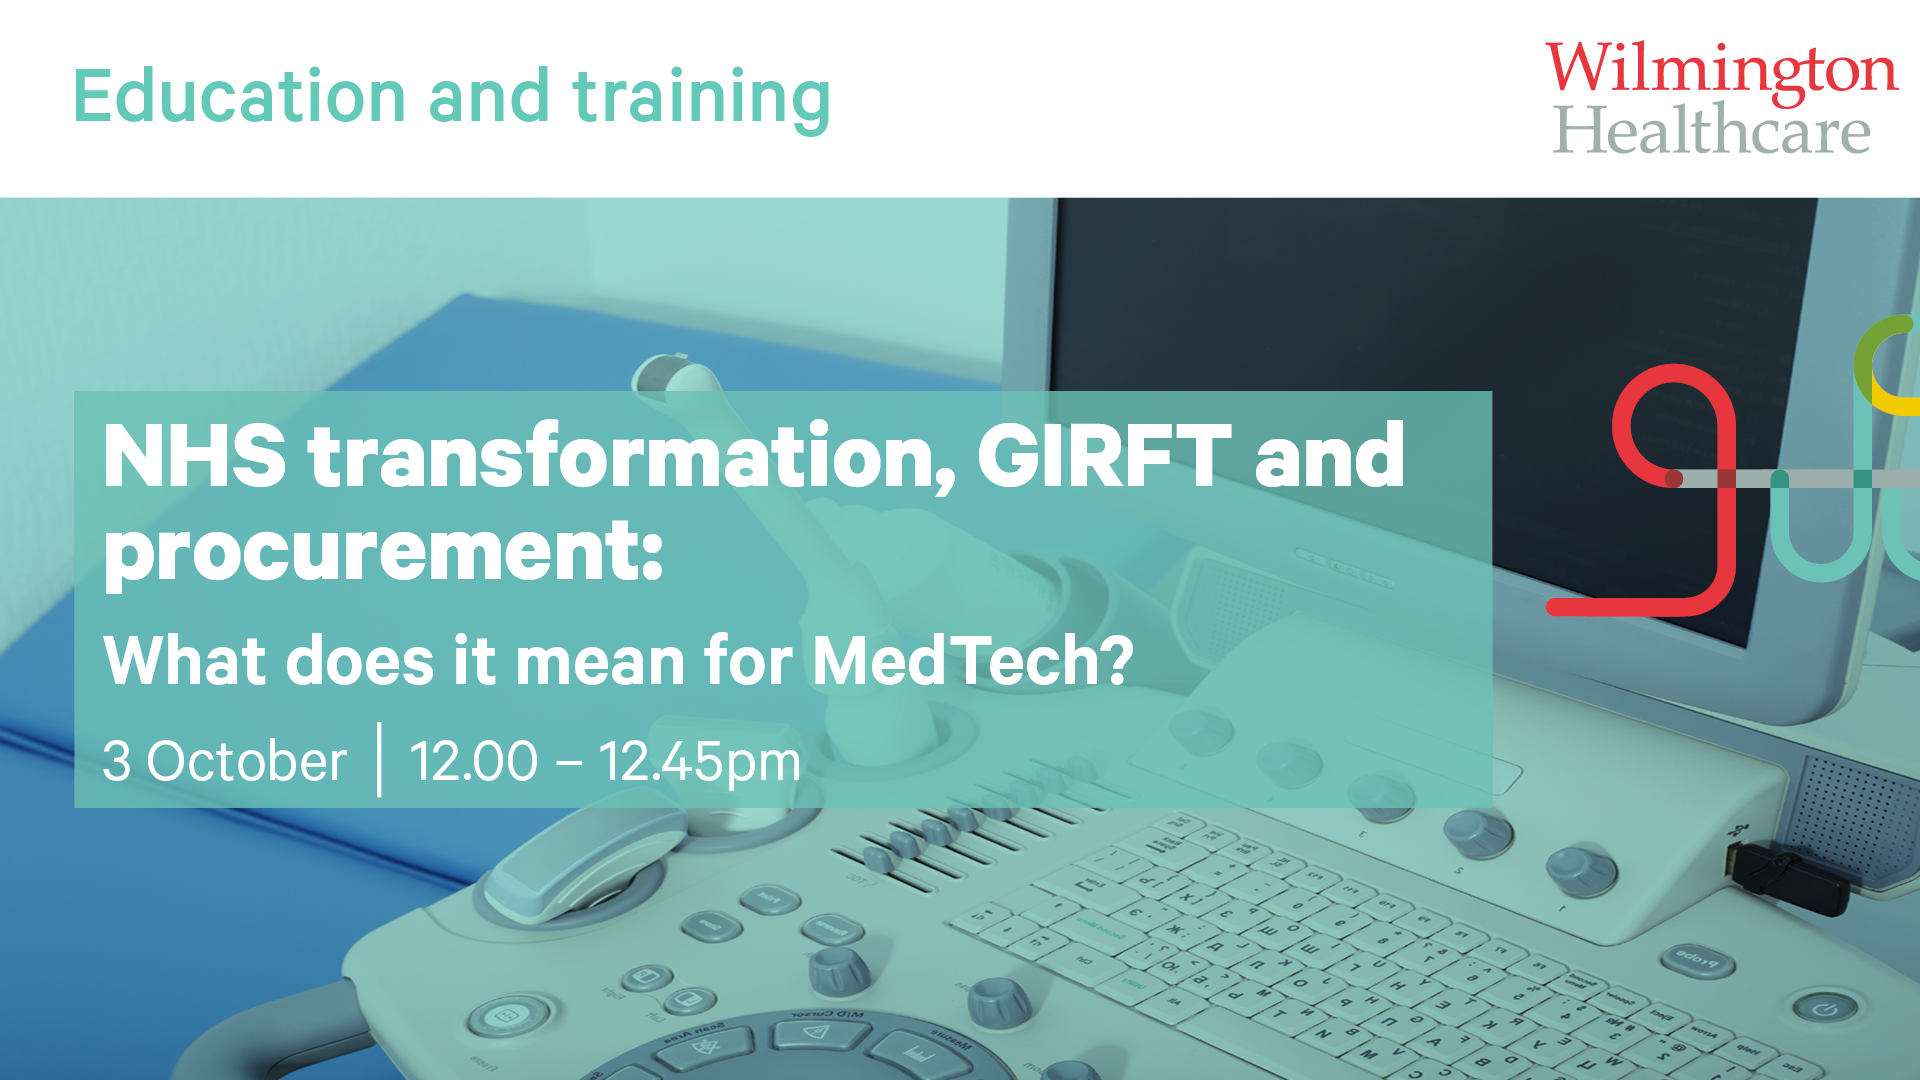 NHS transformation, GIRFT and Procurement: What does it mean for MedTech?